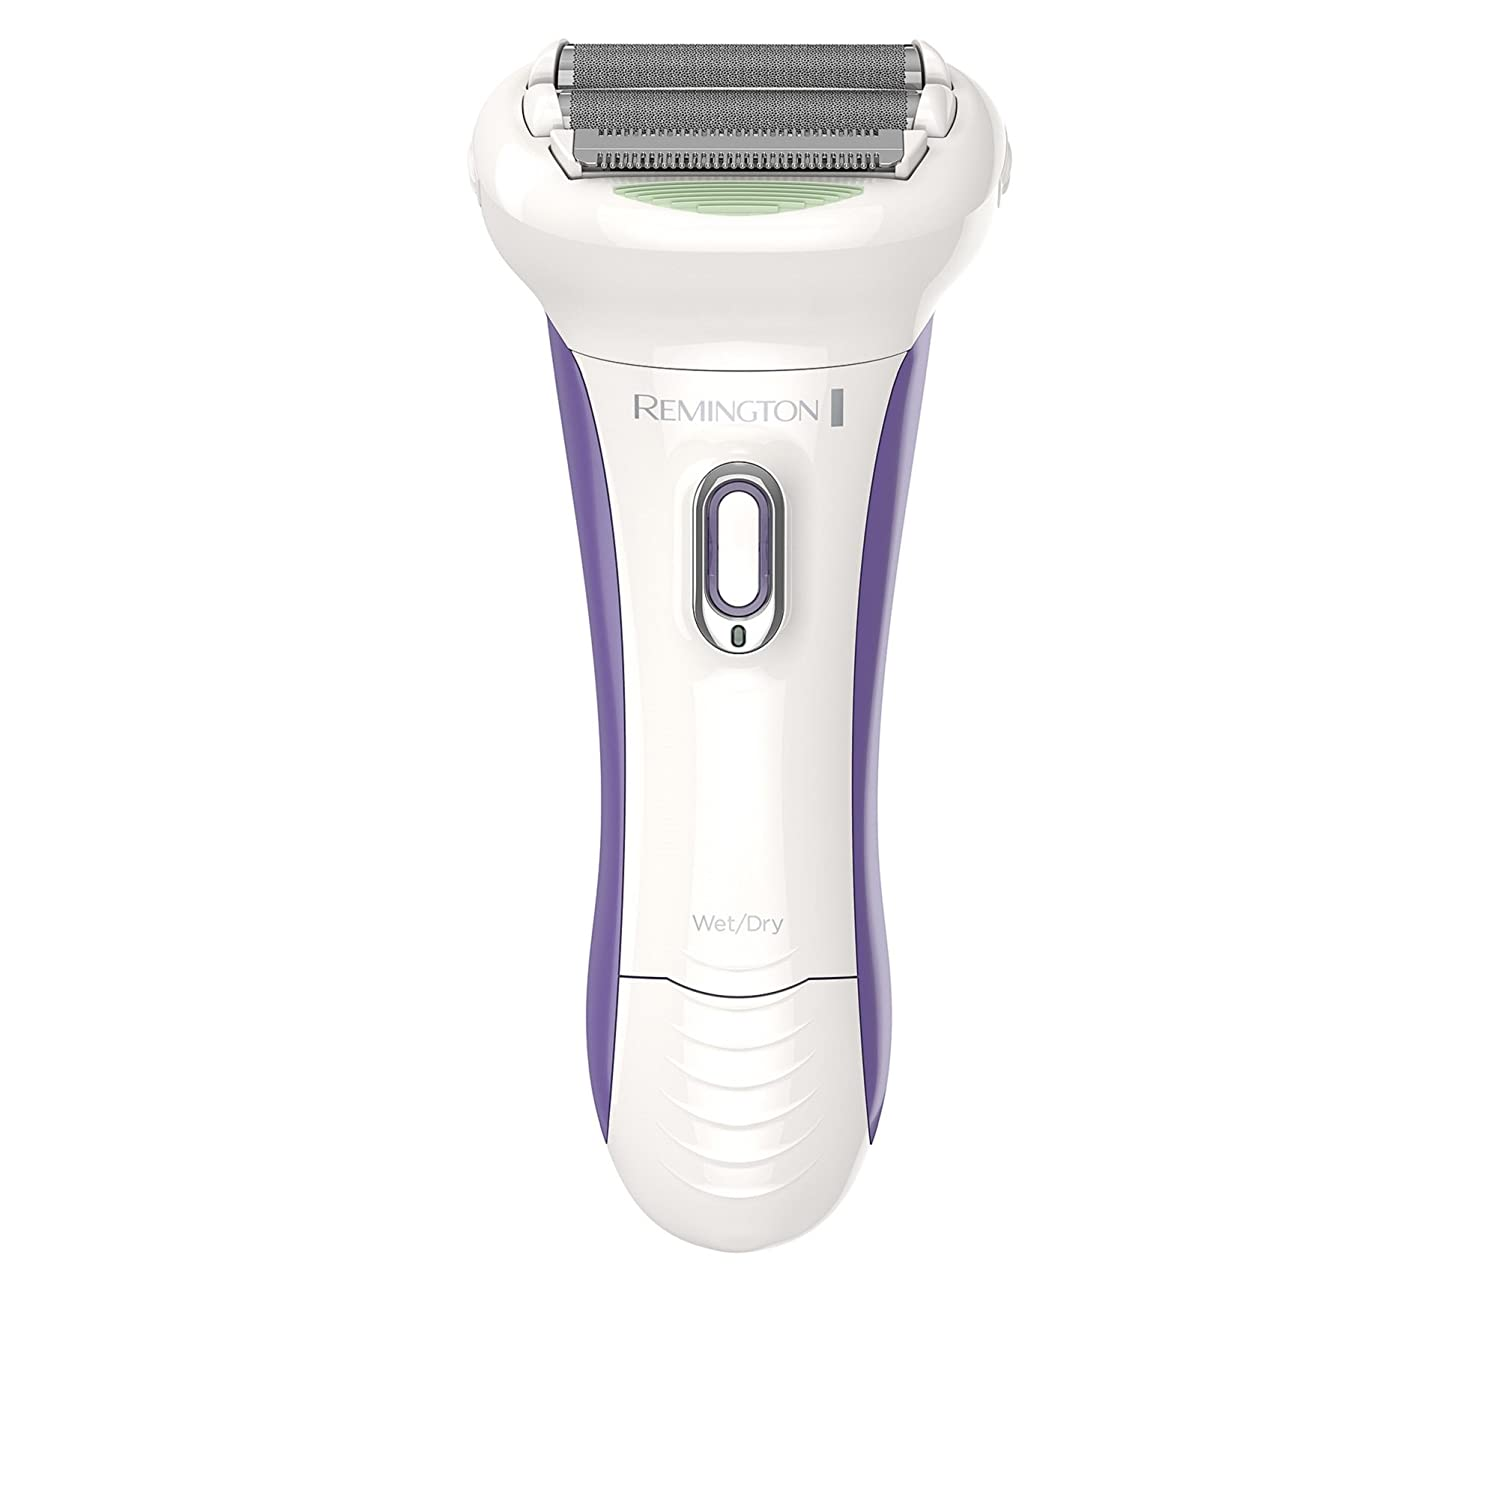 Remington Smooth & Silky Smooth Glide Rechargeable Shaver, White, WDF5030A